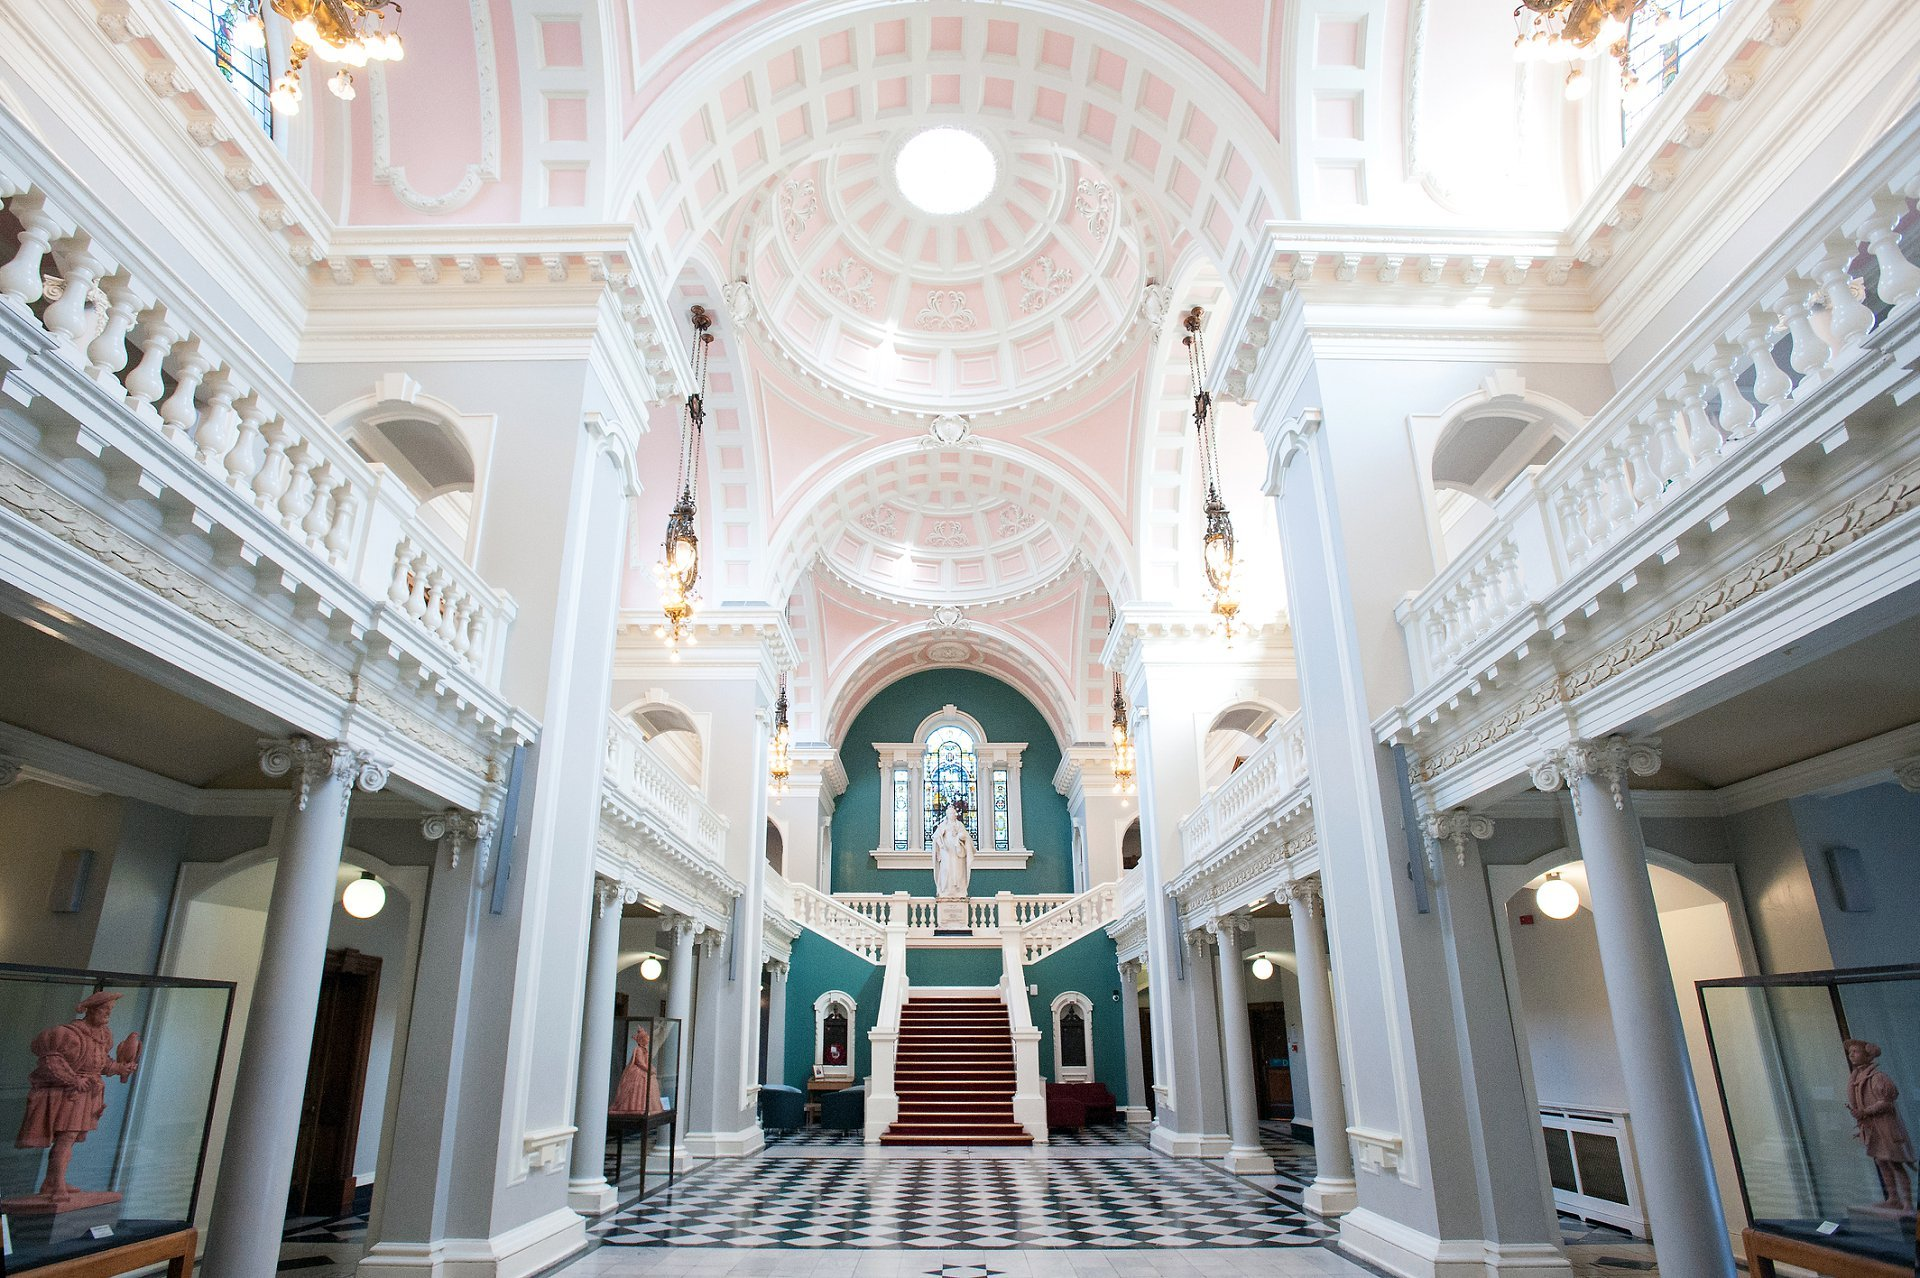 Victoria Hall inside Woolwich Town Hall which is the Greenwich Register Office. Photo by Greenwich Register Office wedding photographer Emma Duggan.